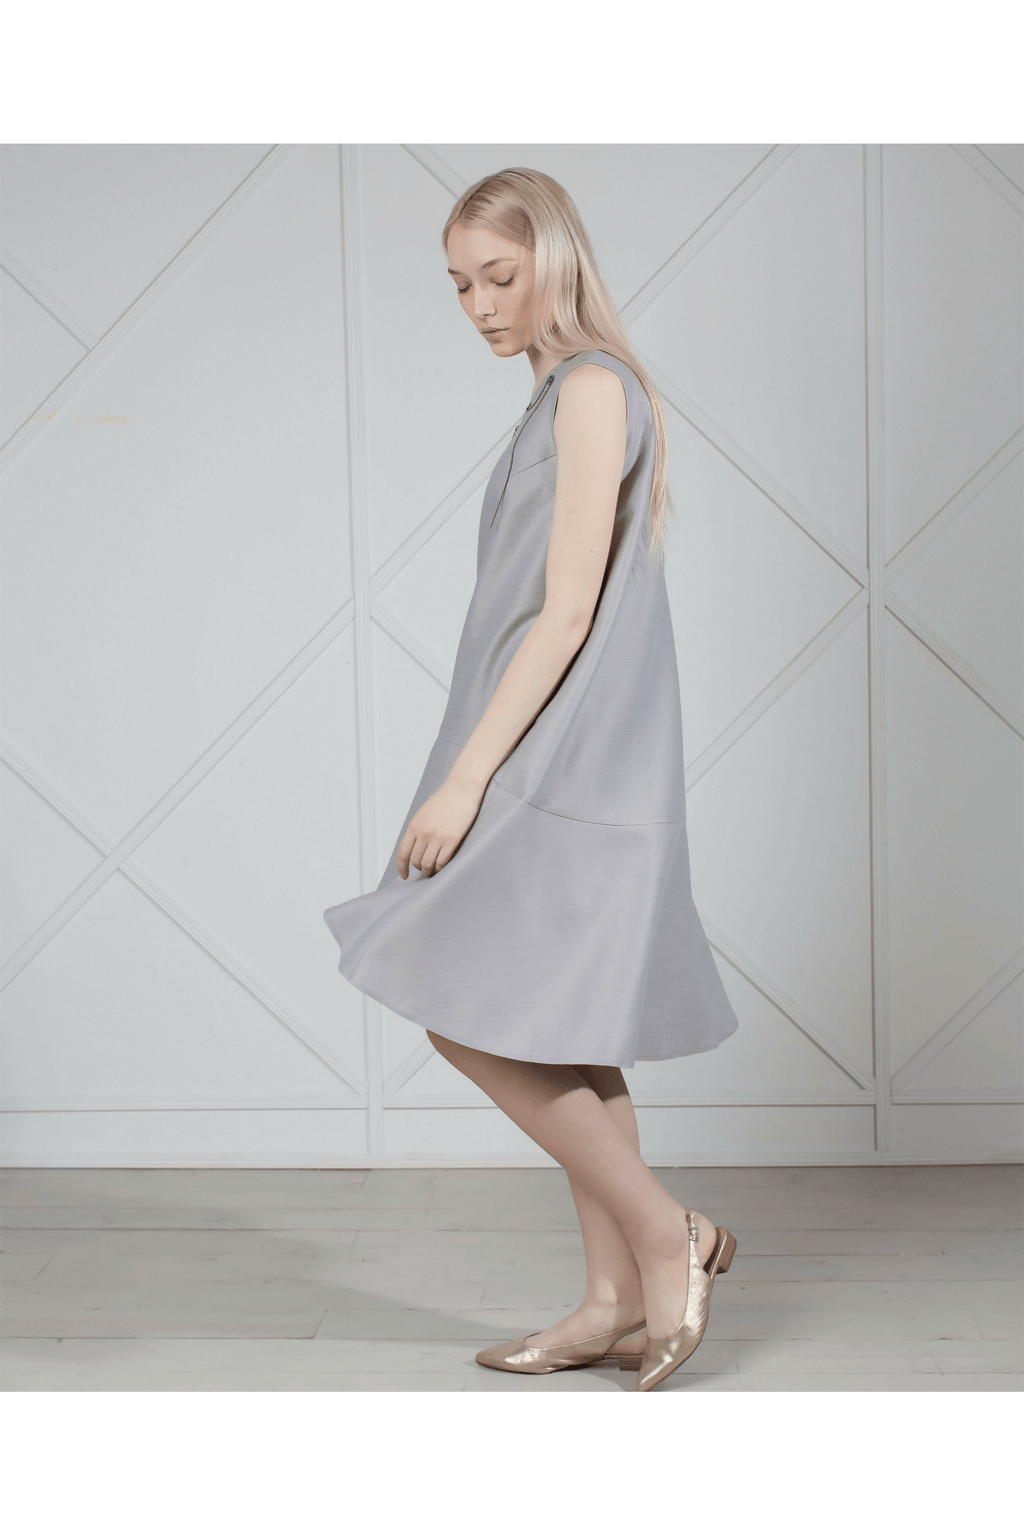 Gray linen dress - Himelhoch's